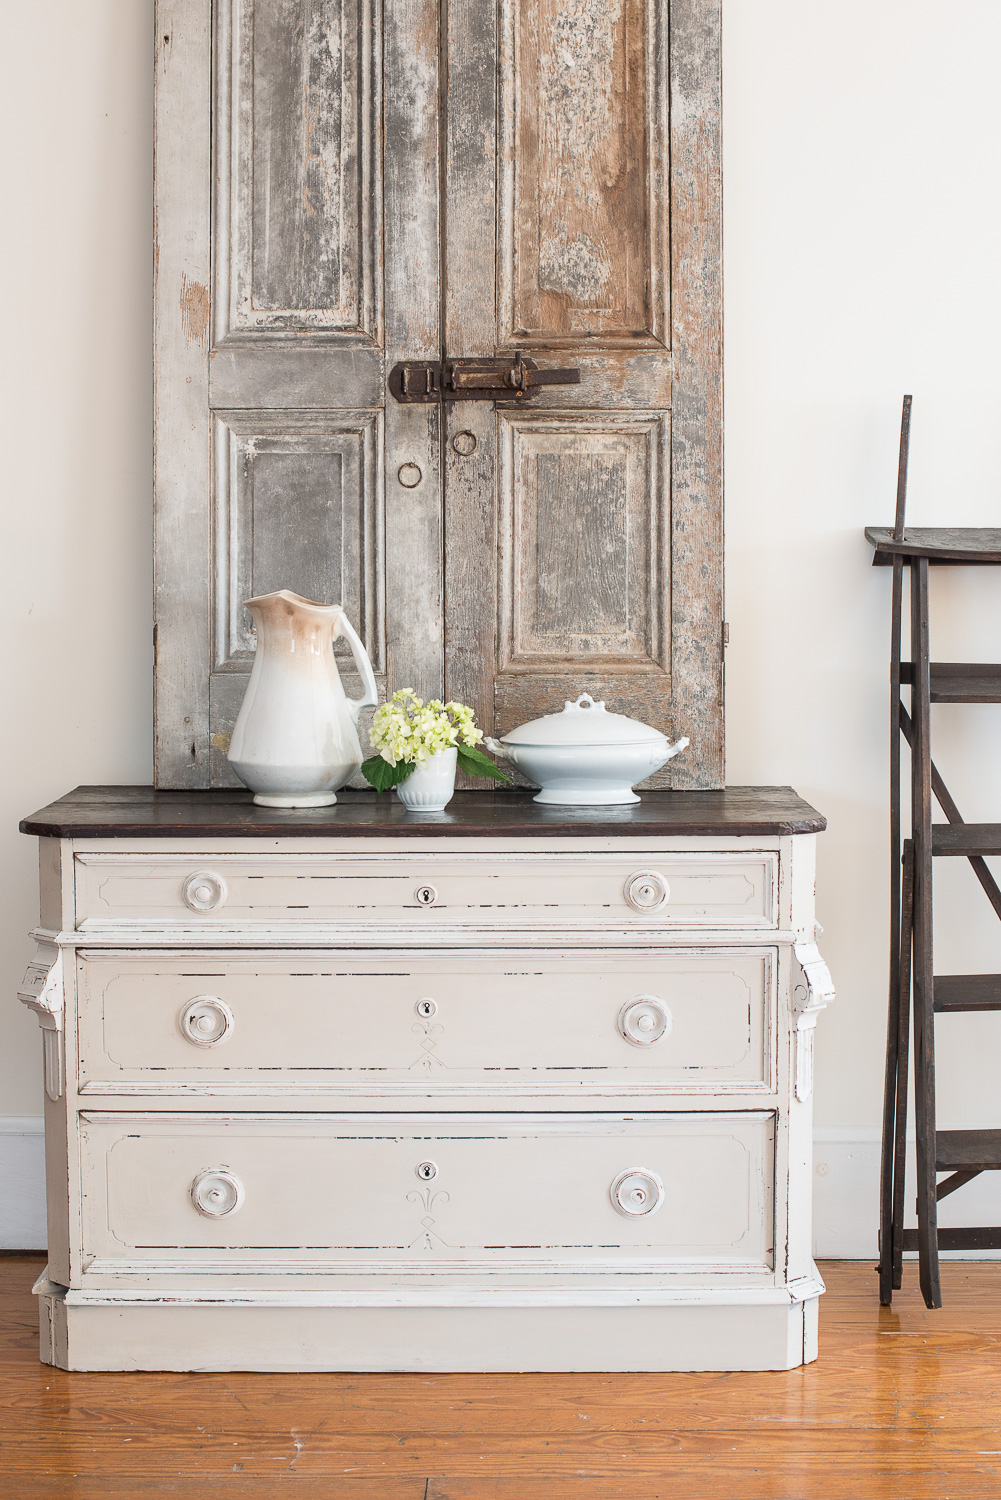 Dresser Painted in Miss Mustard Seed's Milk Paint in the Colour Marzipan